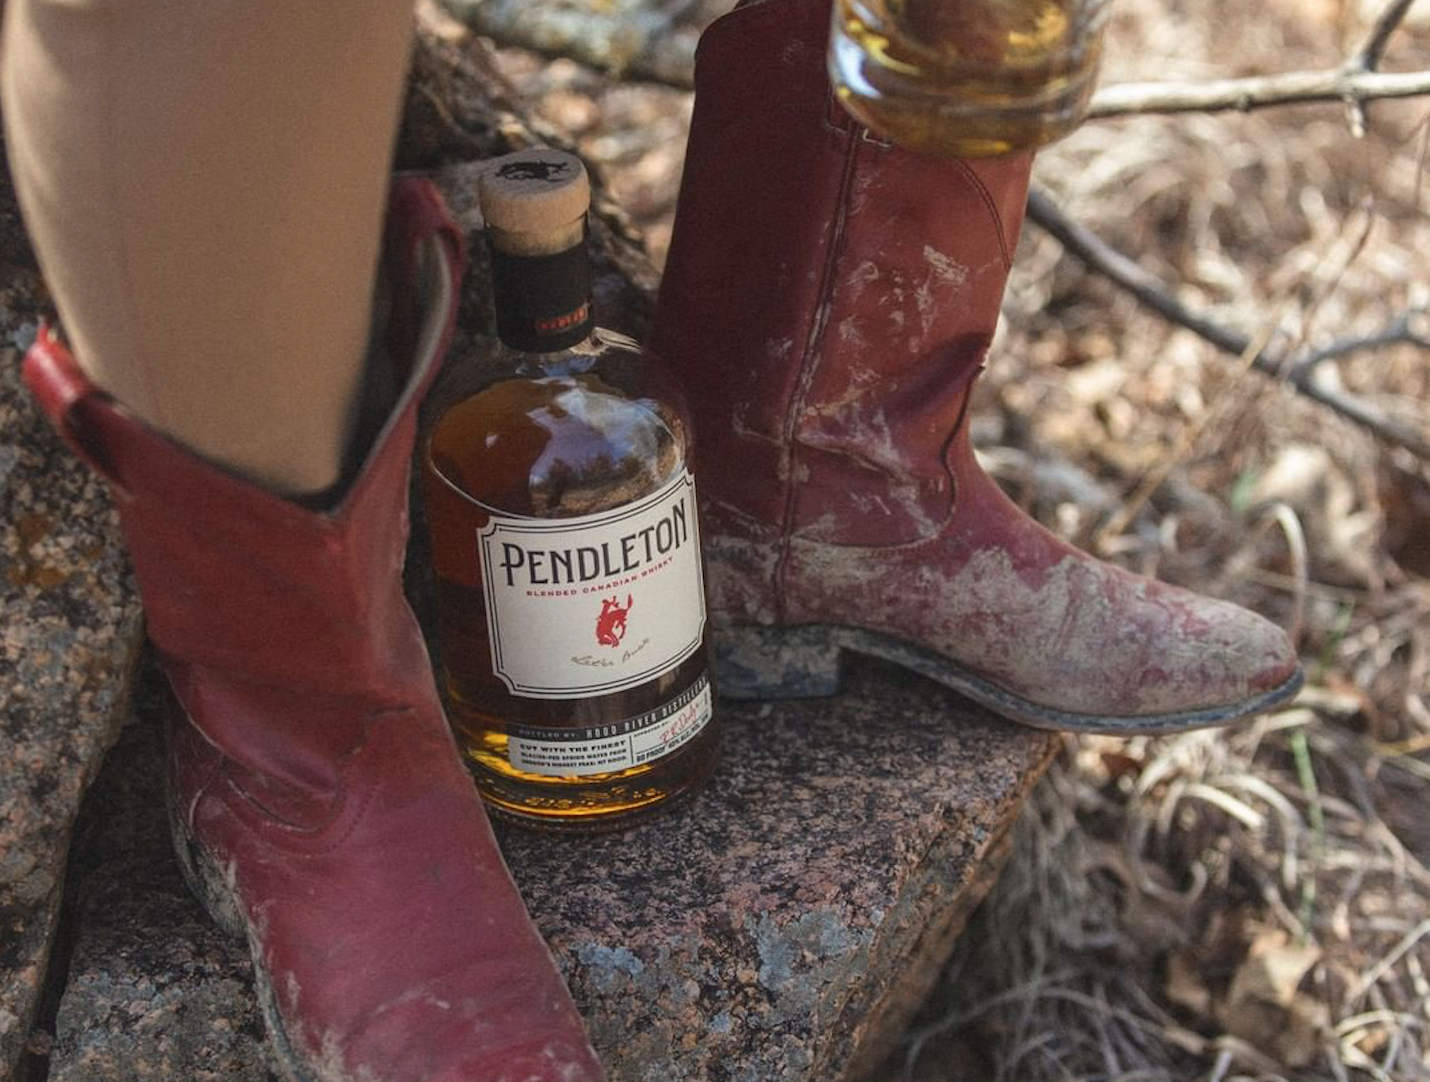 Pendleton Whisky Is Here To Support Western Athletes photo